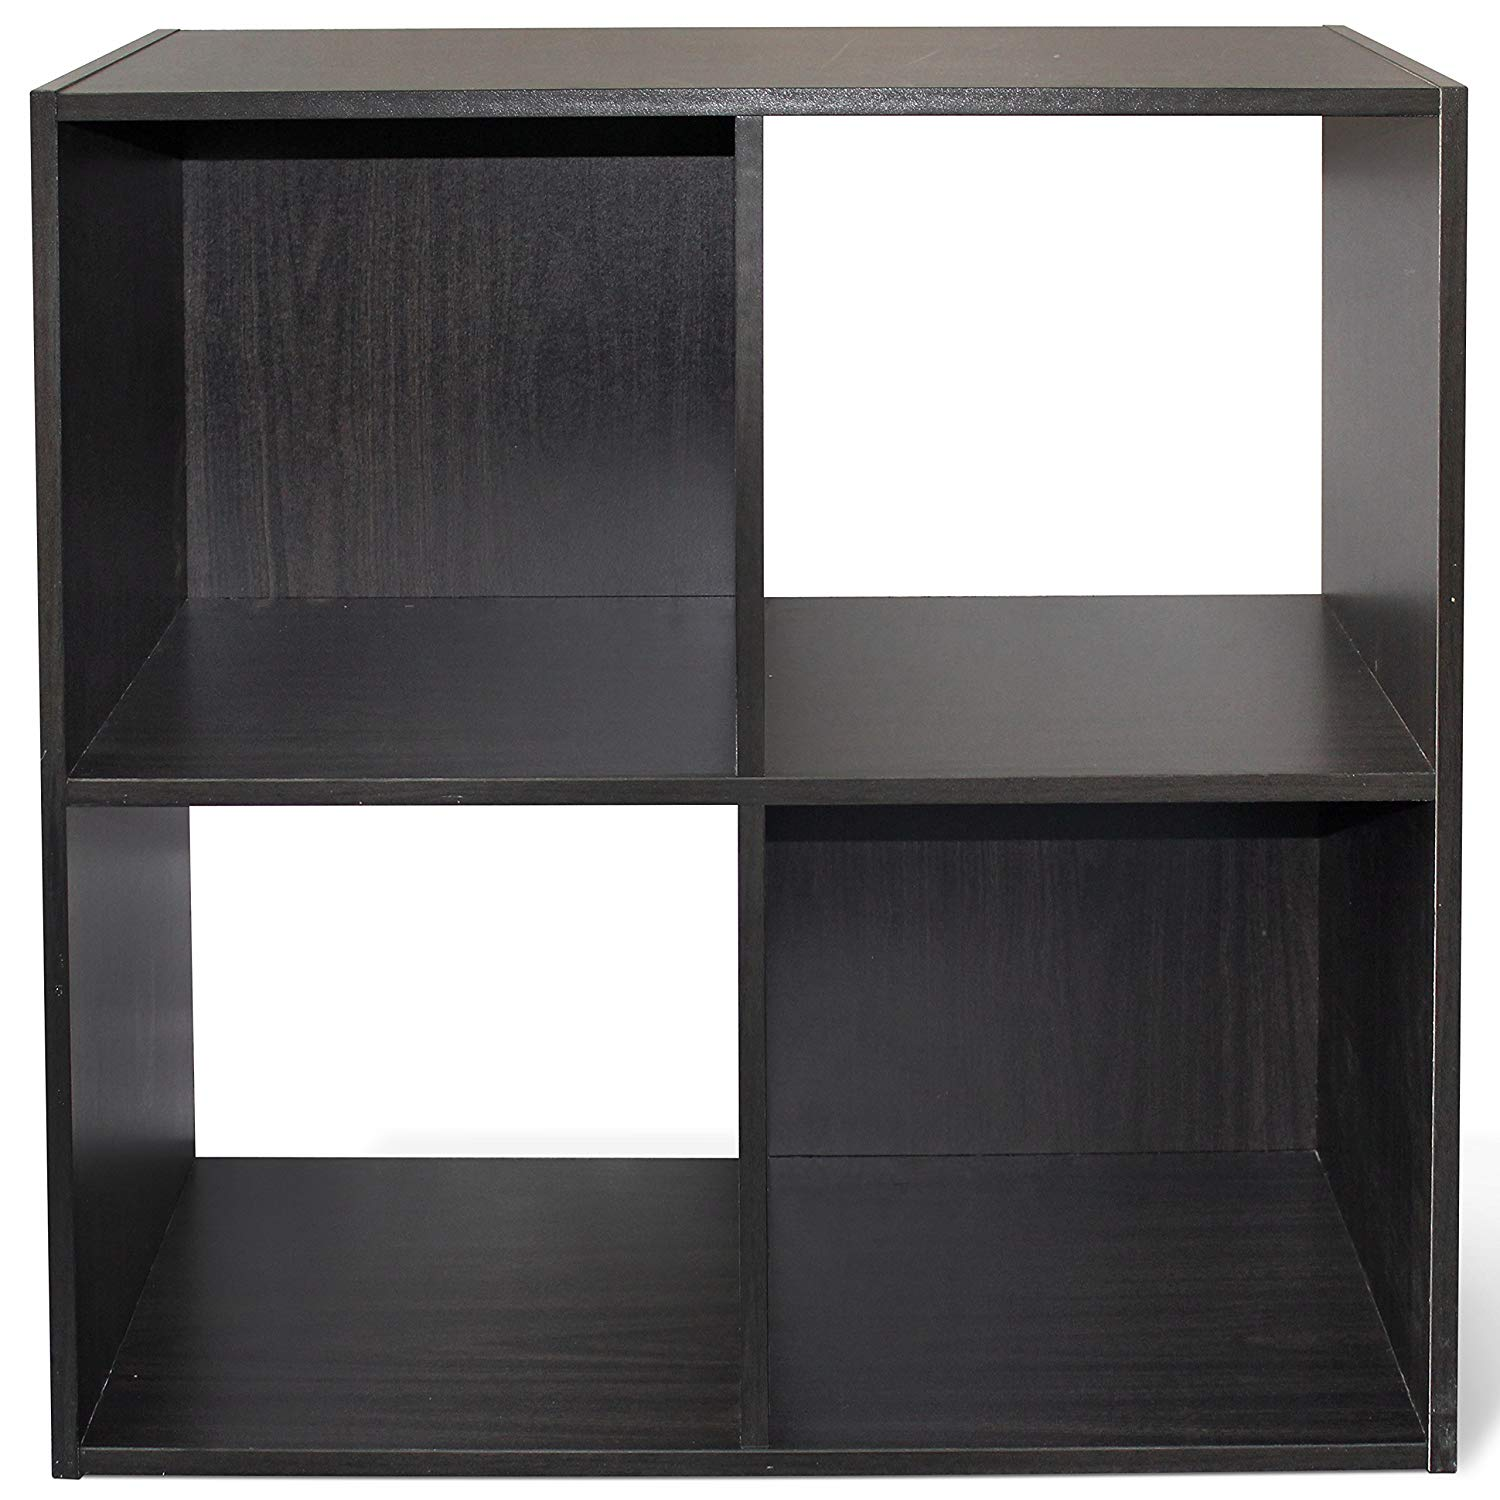 Cap Living 4 6 8 Cube Room Organizer Storage Divider Bookcase Colors Available In Espresso And White